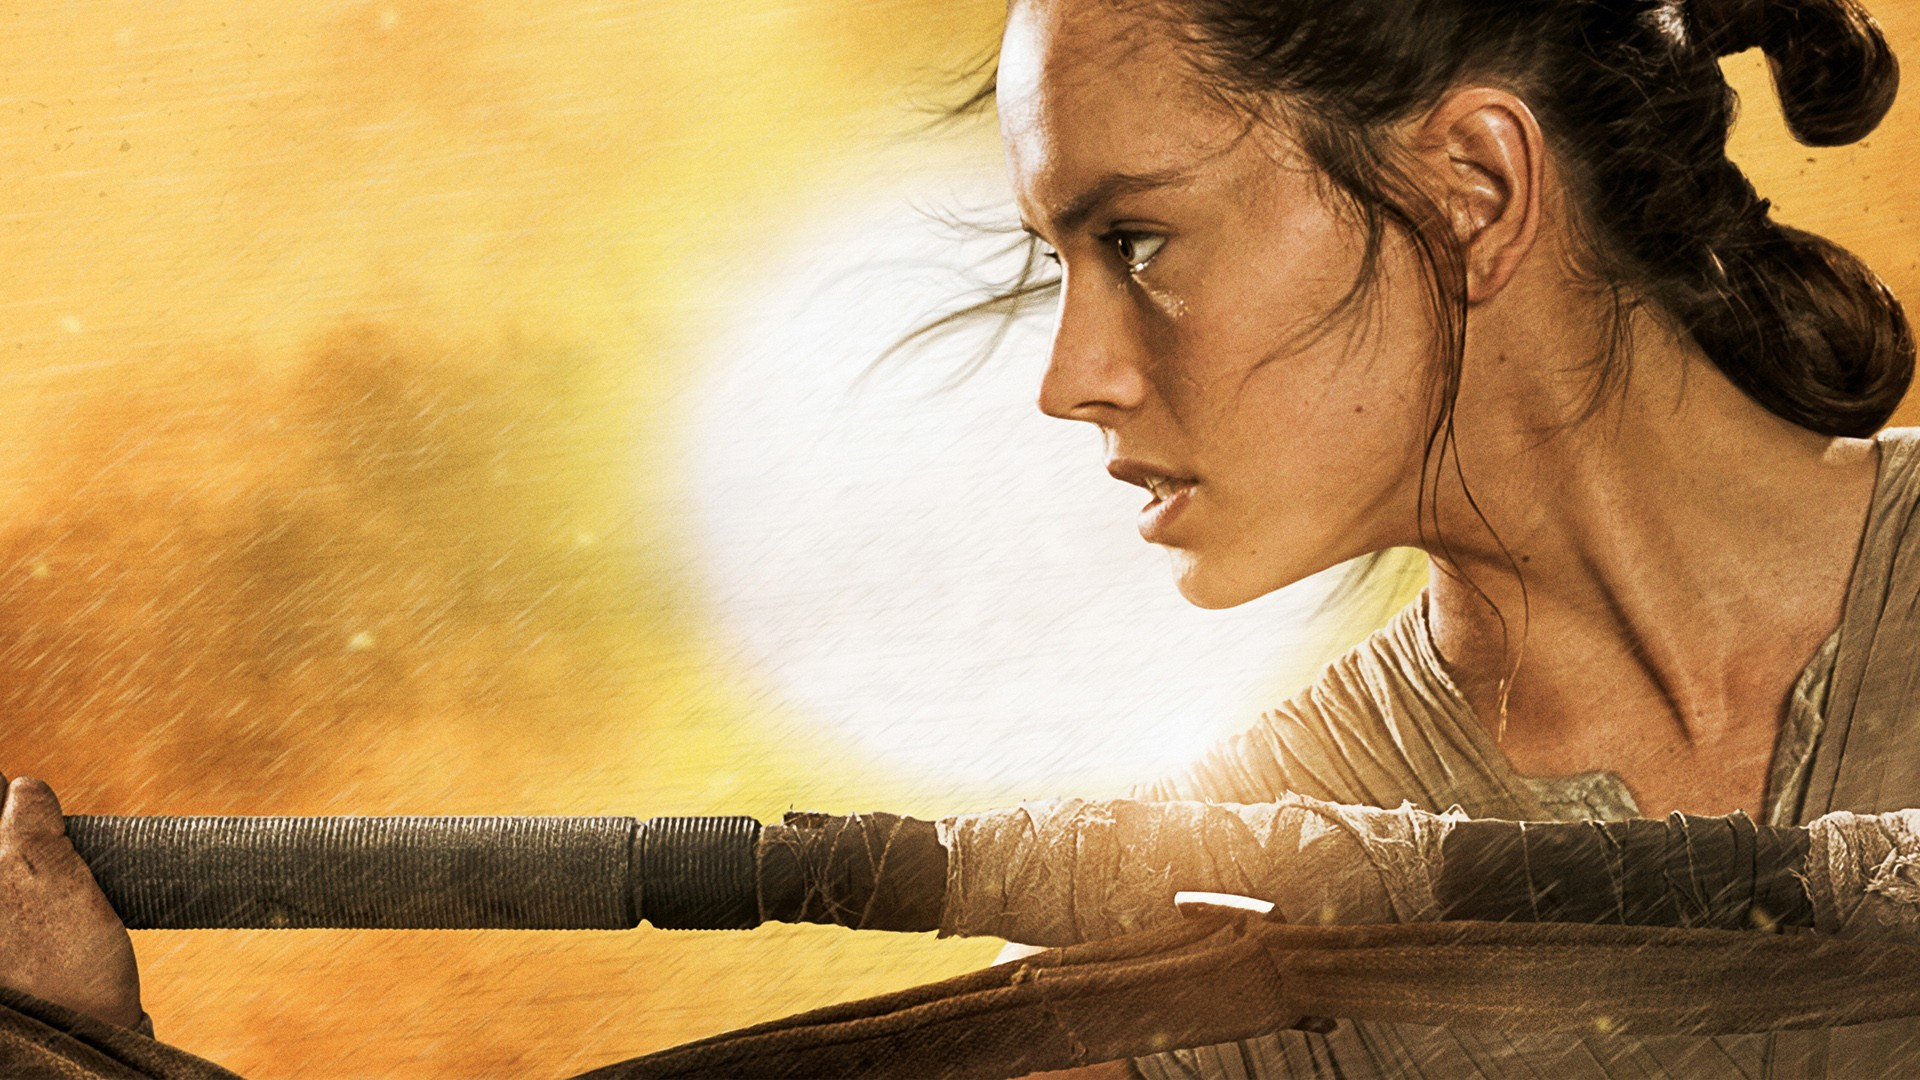 1920x1080 ... x 1080. Multi Monitor Panorama resolutions:3840 x 1200 Original.  Description: Download Star Wars The Force Awakens Rey Movies wallpaper ...